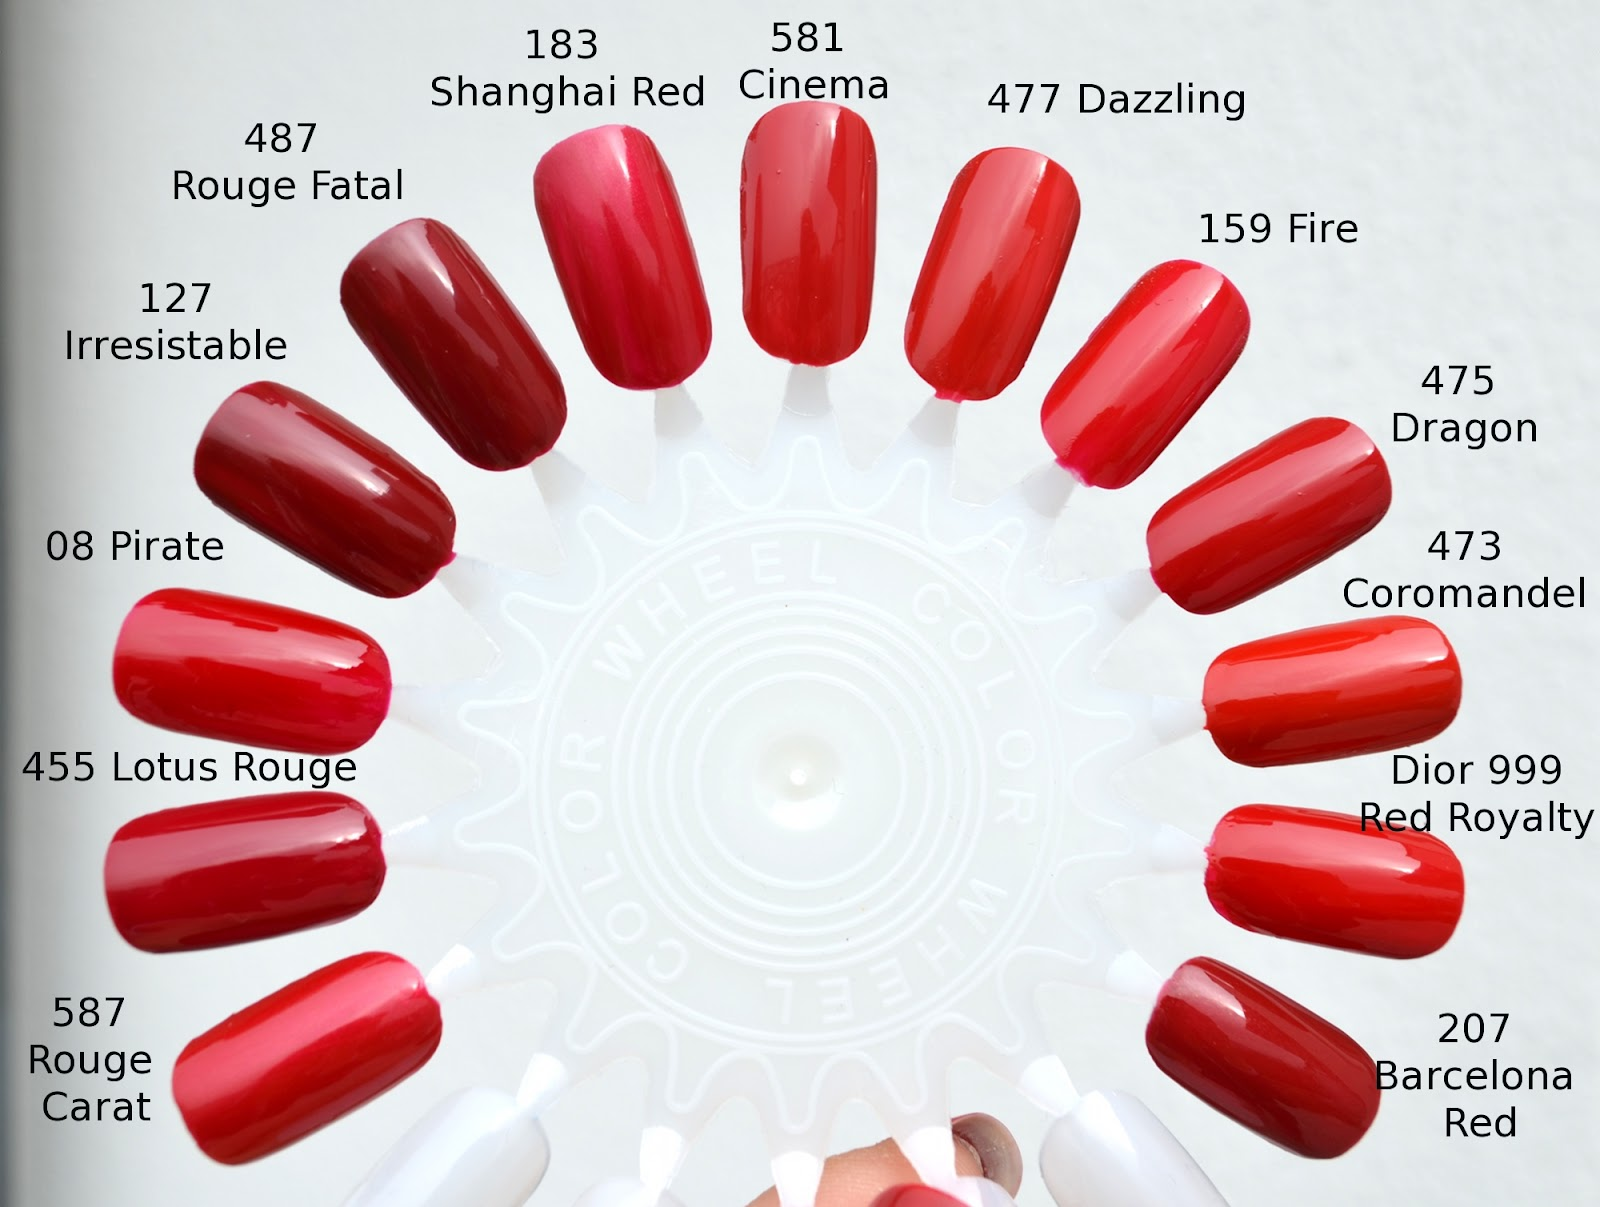 Different Shades Of Red chanel 581 cinema & fifty shades of red | color me loud | bloglovin'